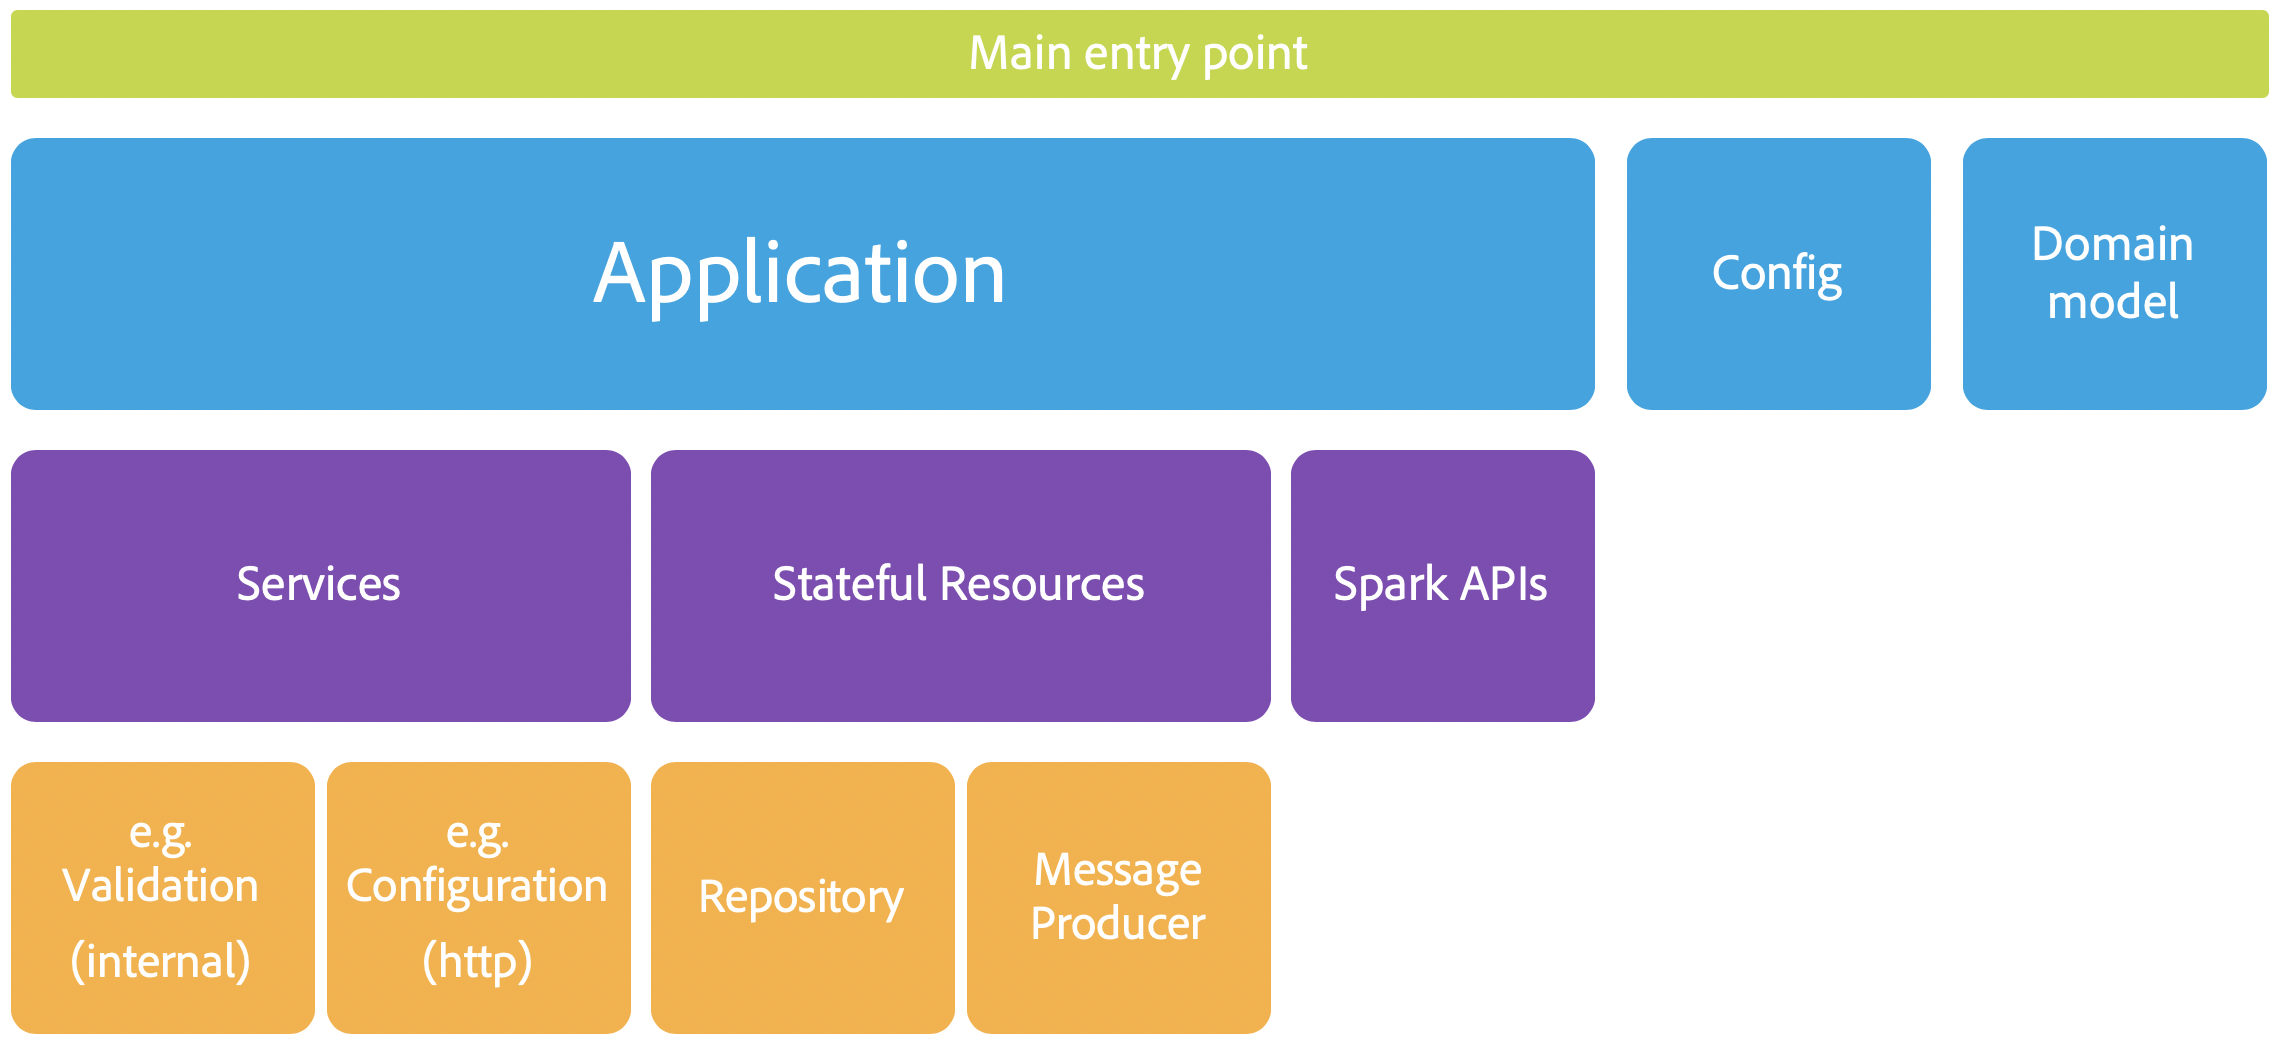 Spark on Scala: Adobe Analytics Reference Architecture